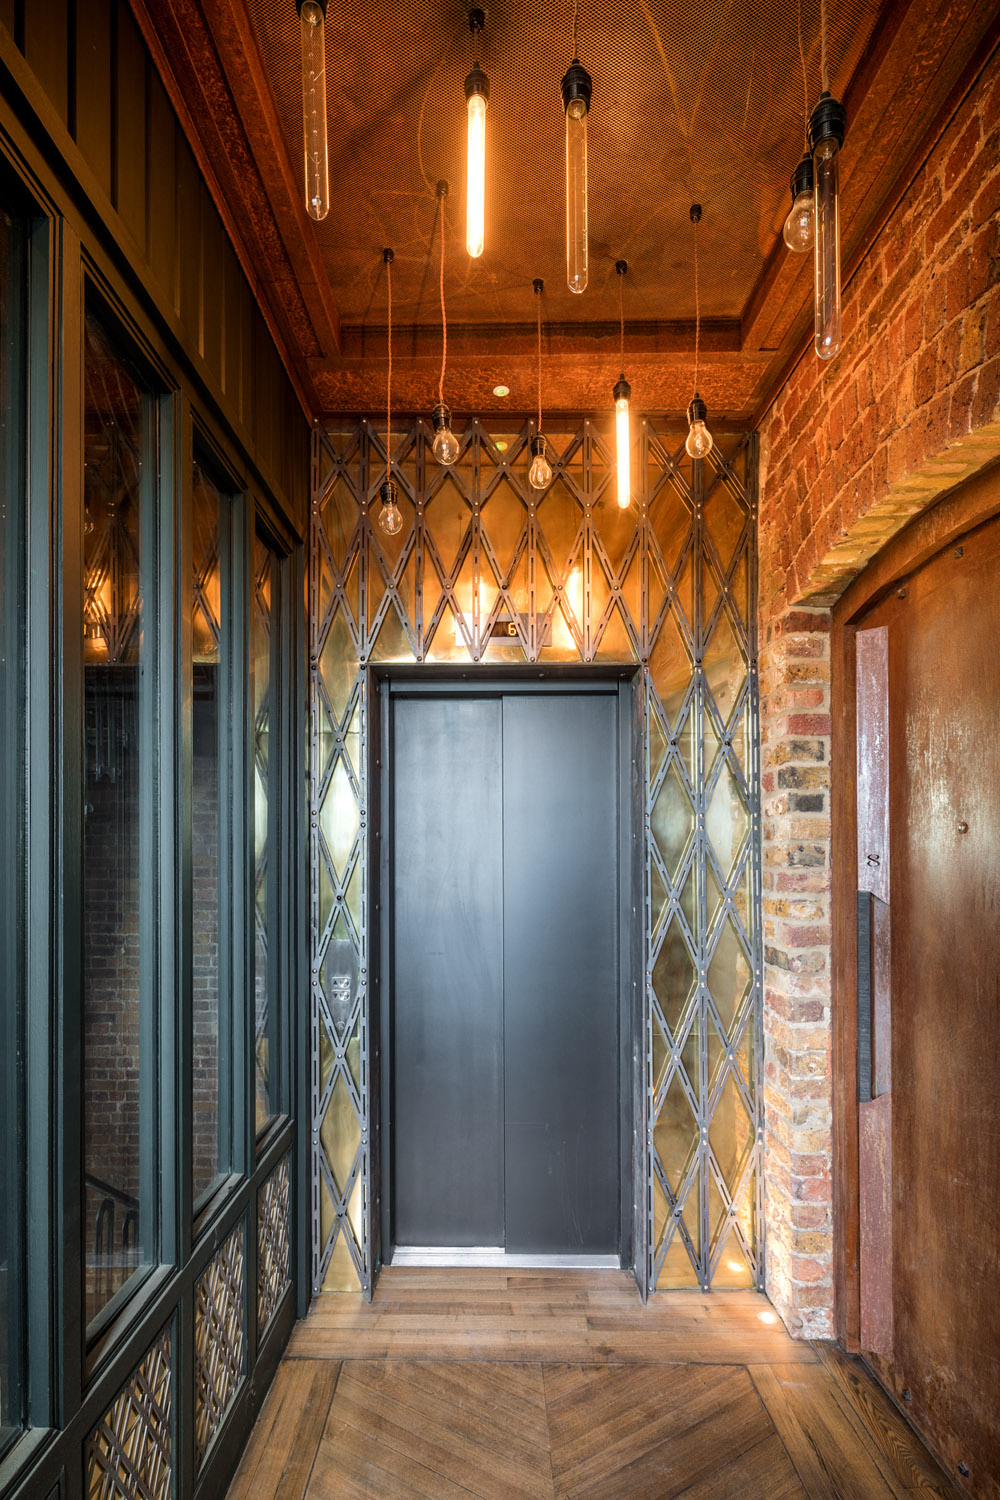 Chappell Lofts by Joas Souza Photographer